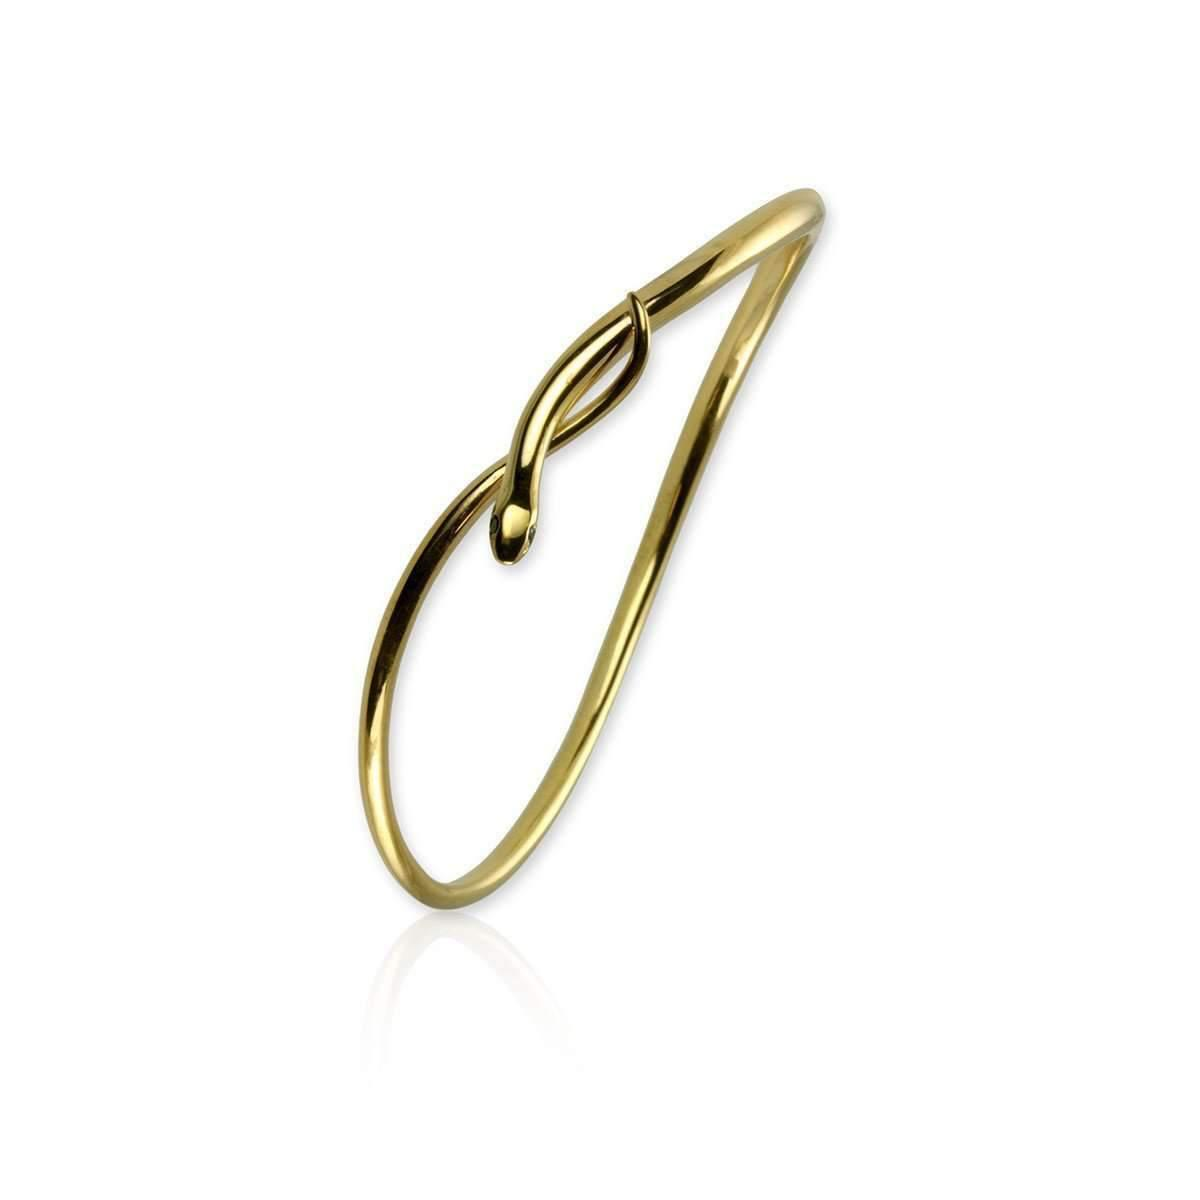 Jana Reinhardt Gold Plated Silver Snake Bangle With Black Diamonds 34QfWQ7g